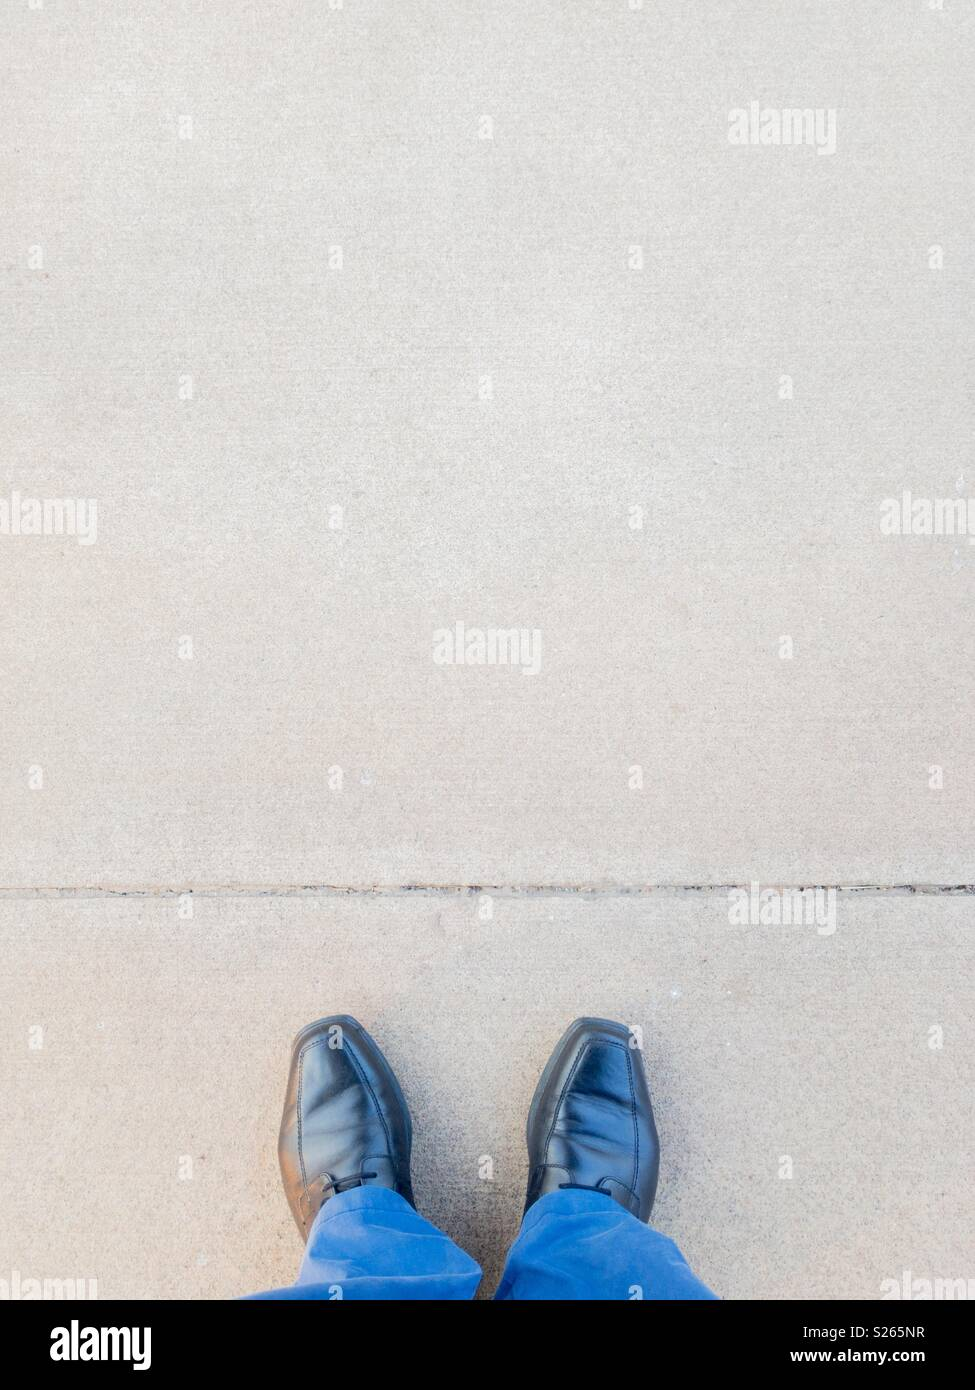 Personal perspective of a man standing in front of a line traced on the ground. - Stock Image